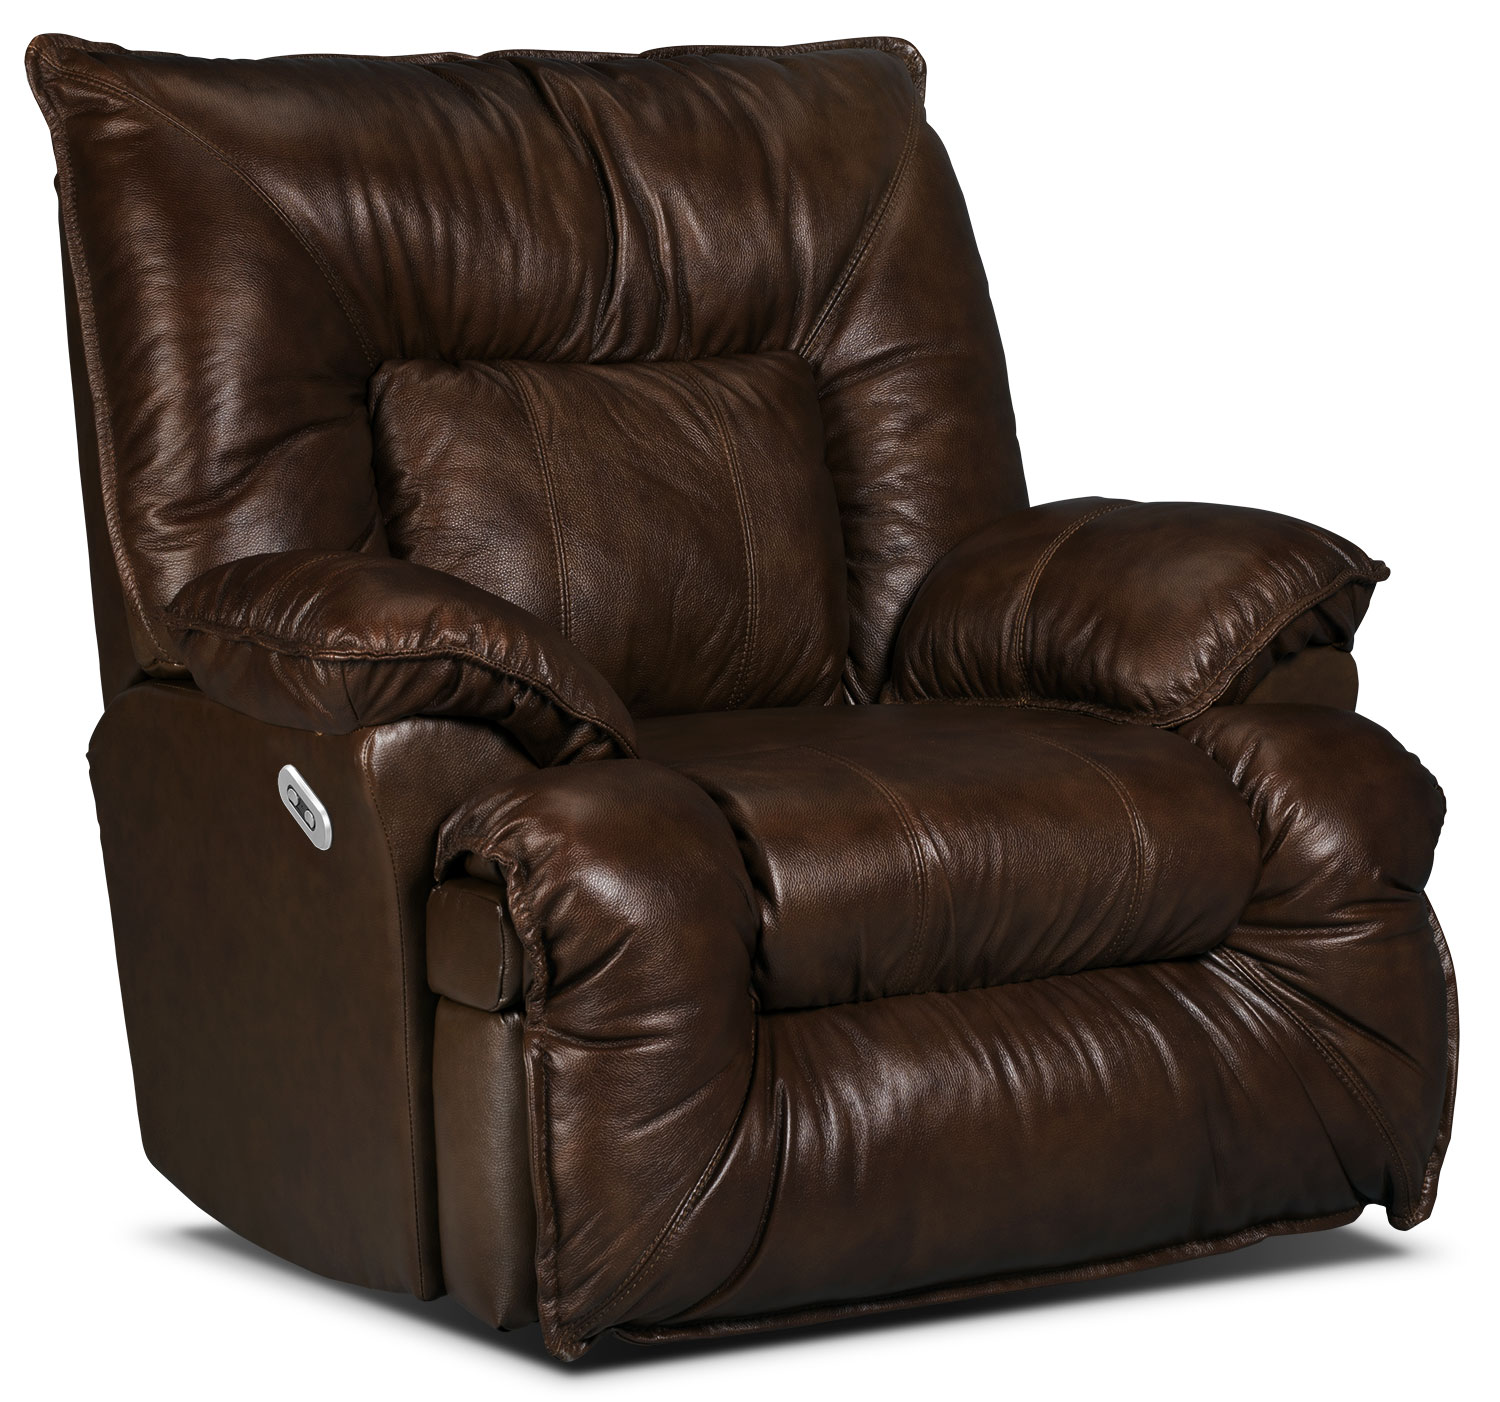 Living Room Furniture - Designed2B Recliner 7726 Genuine Leather Power Lay-Flat Recline Chair - Chocolate